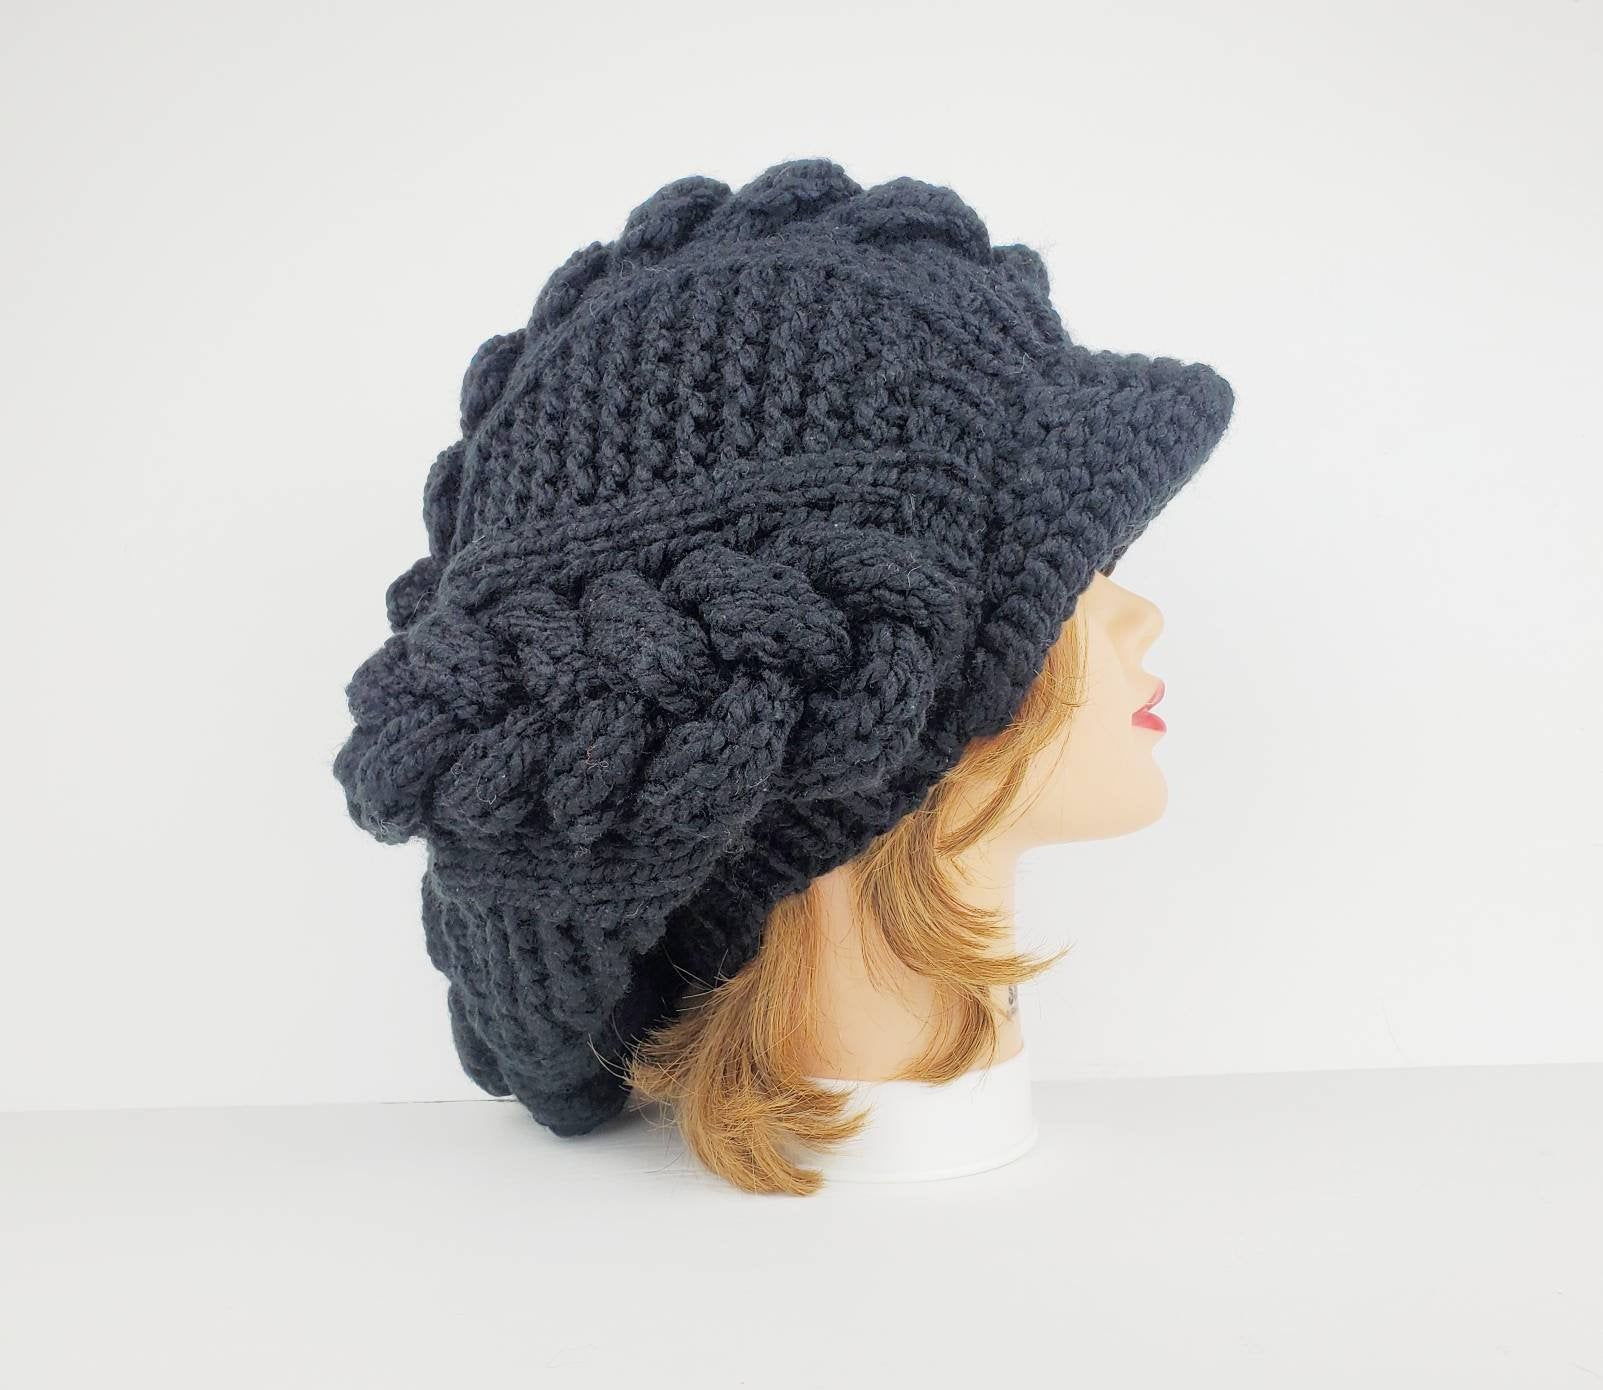 Chunky Knit Hat For Women Newsboy Cap Slouchy Beanie Etsy Knitted Hats Chunky Knit Hat Crochet Newsboy Hat